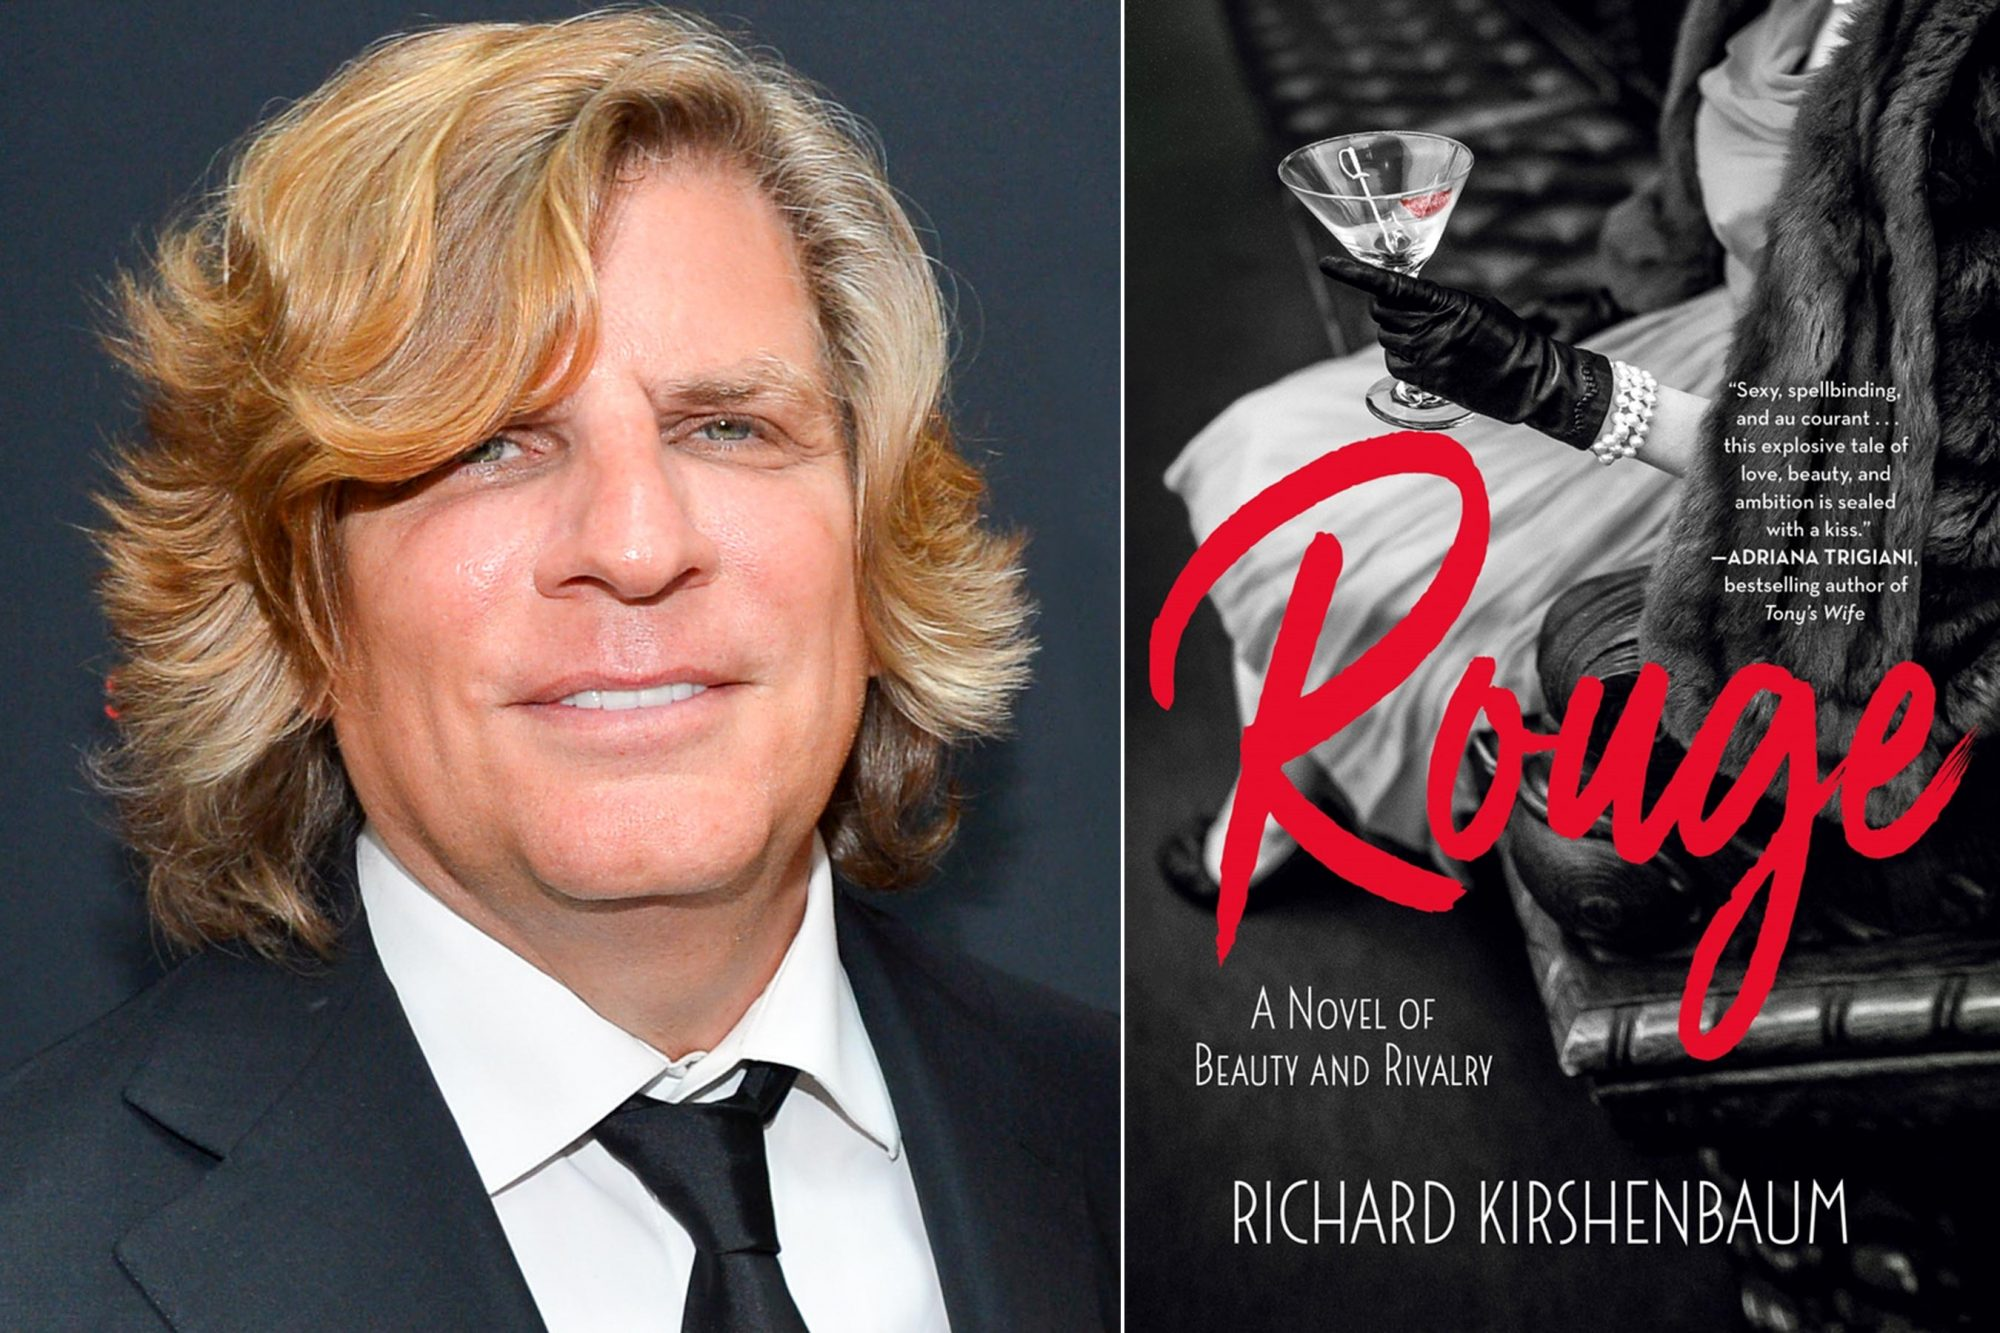 NEW YORK, NY - JUNE 05: Richard Kirshenbaum attends Richard Kirshenbaum's Book Party, ROUGE! at Pace Gallery on June 5, 2019 in New York City. (Photo by Patrick McMullan/Patrick McMullan via Getty Images) Rouge by Richard Kirshenbaum CR: St. Martin's Press